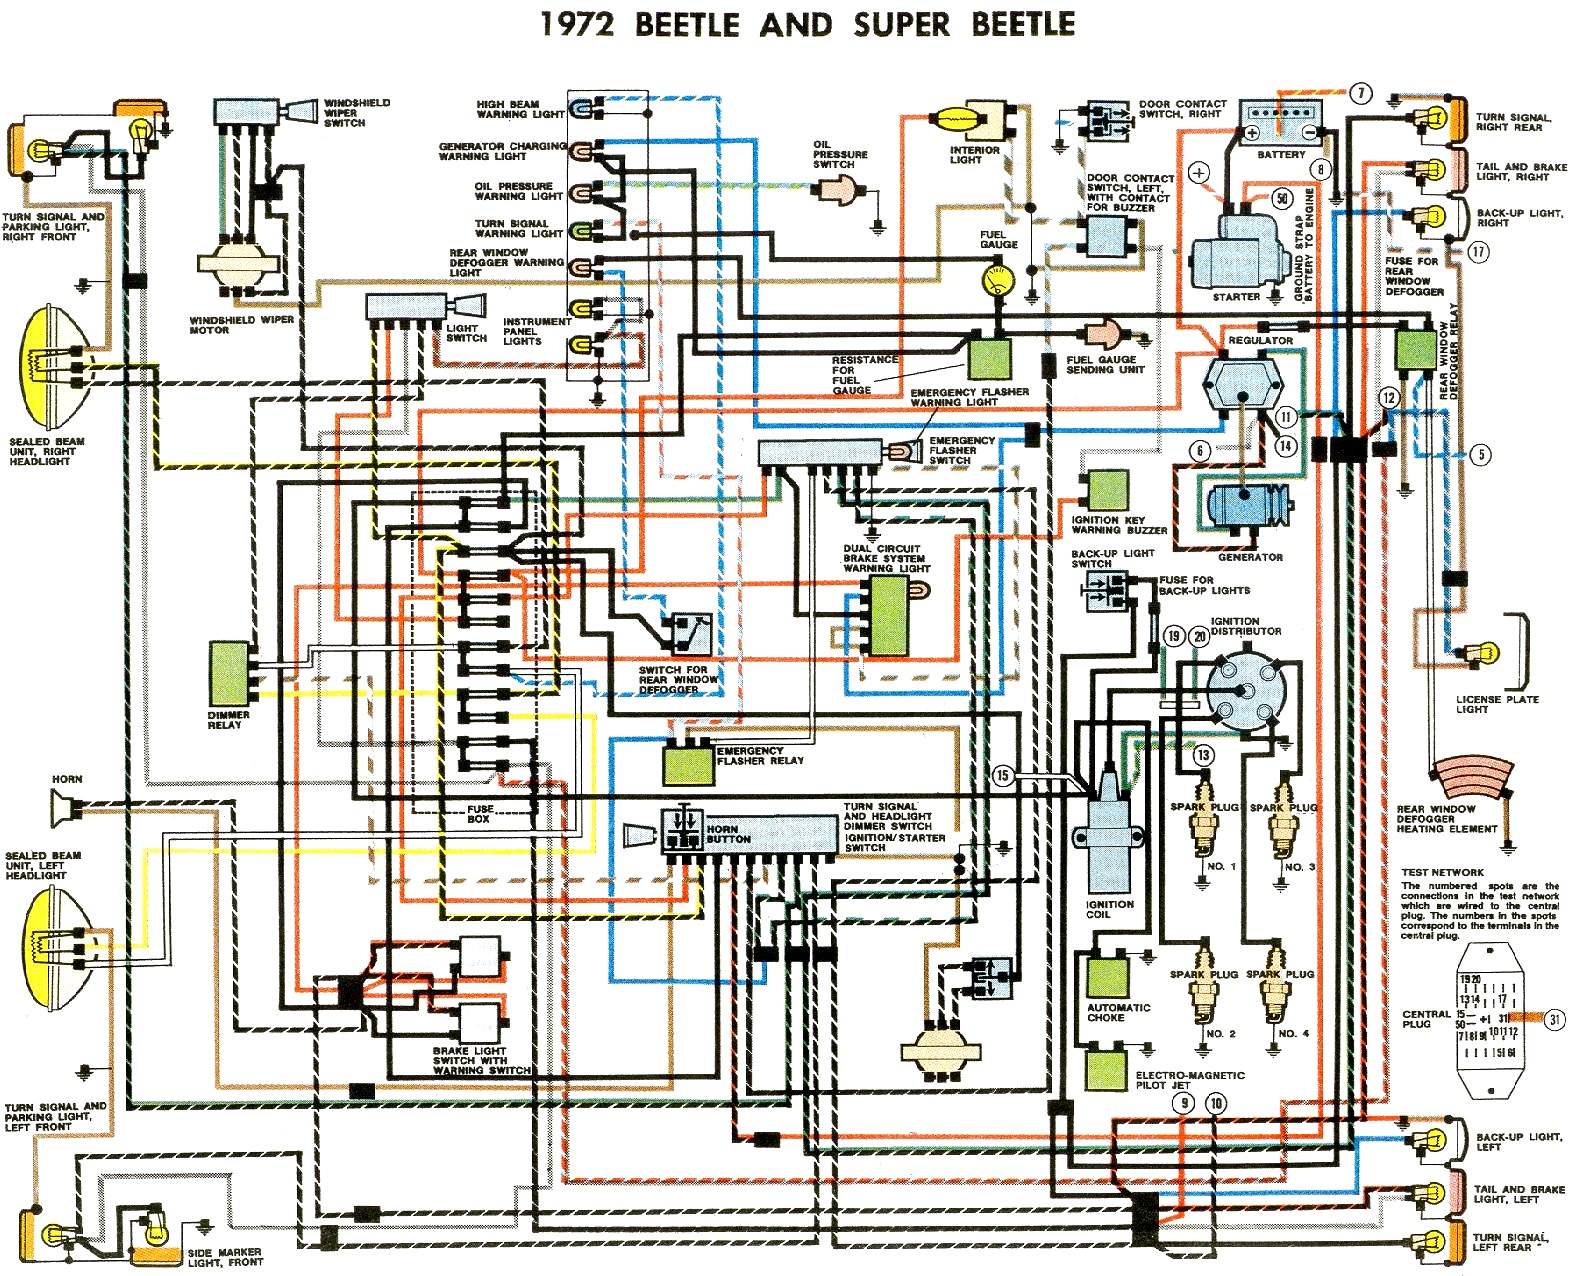 bug_72 1972 beetle wiring diagram thegoldenbug com volkswagen 2002 beetle wiring diagram at edmiracle.co